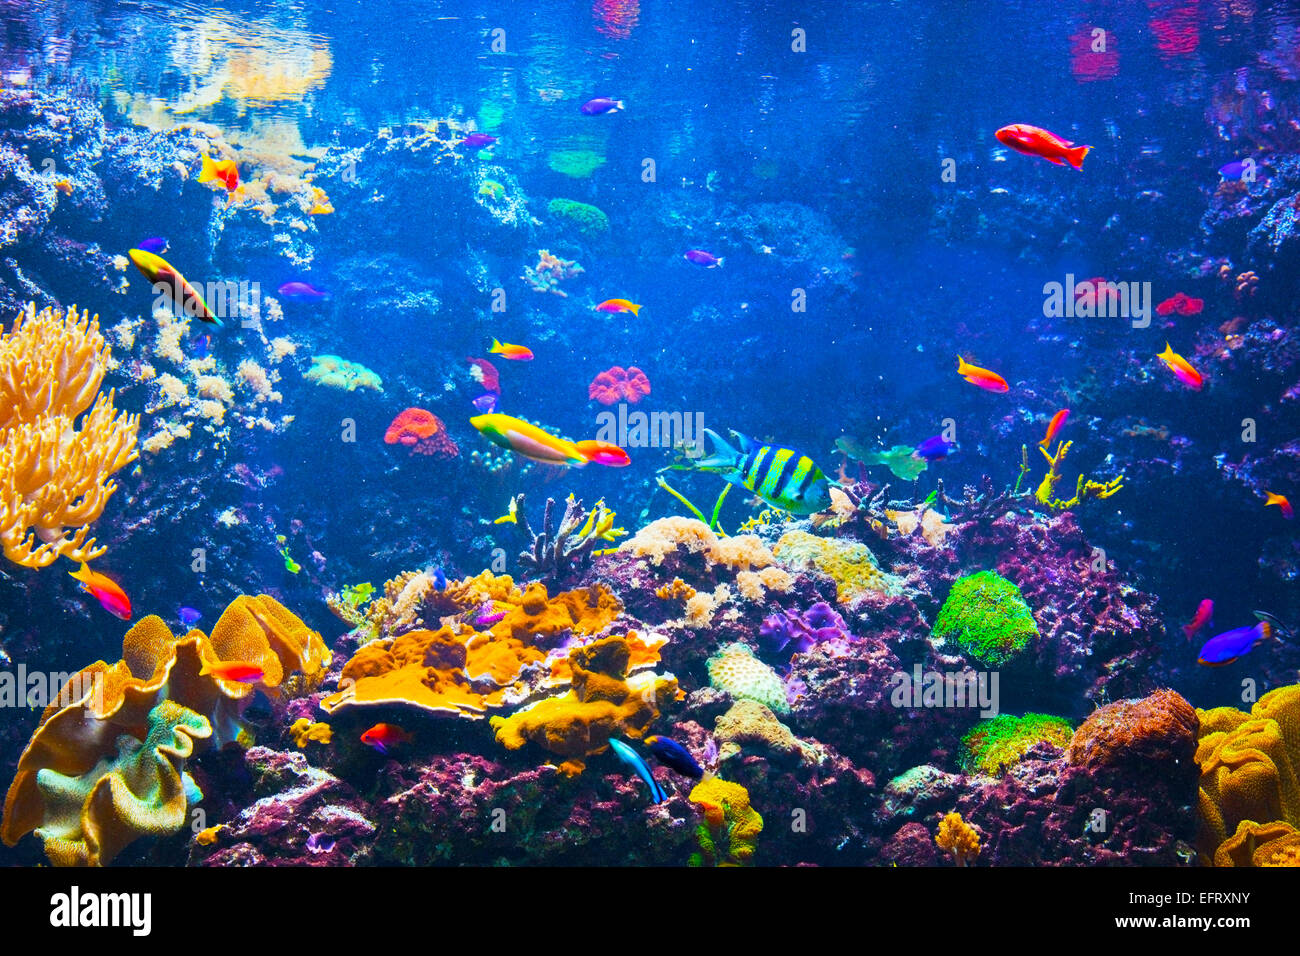 Underwater life. Coral reef, fish, colorful plants in ocean - Stock Image